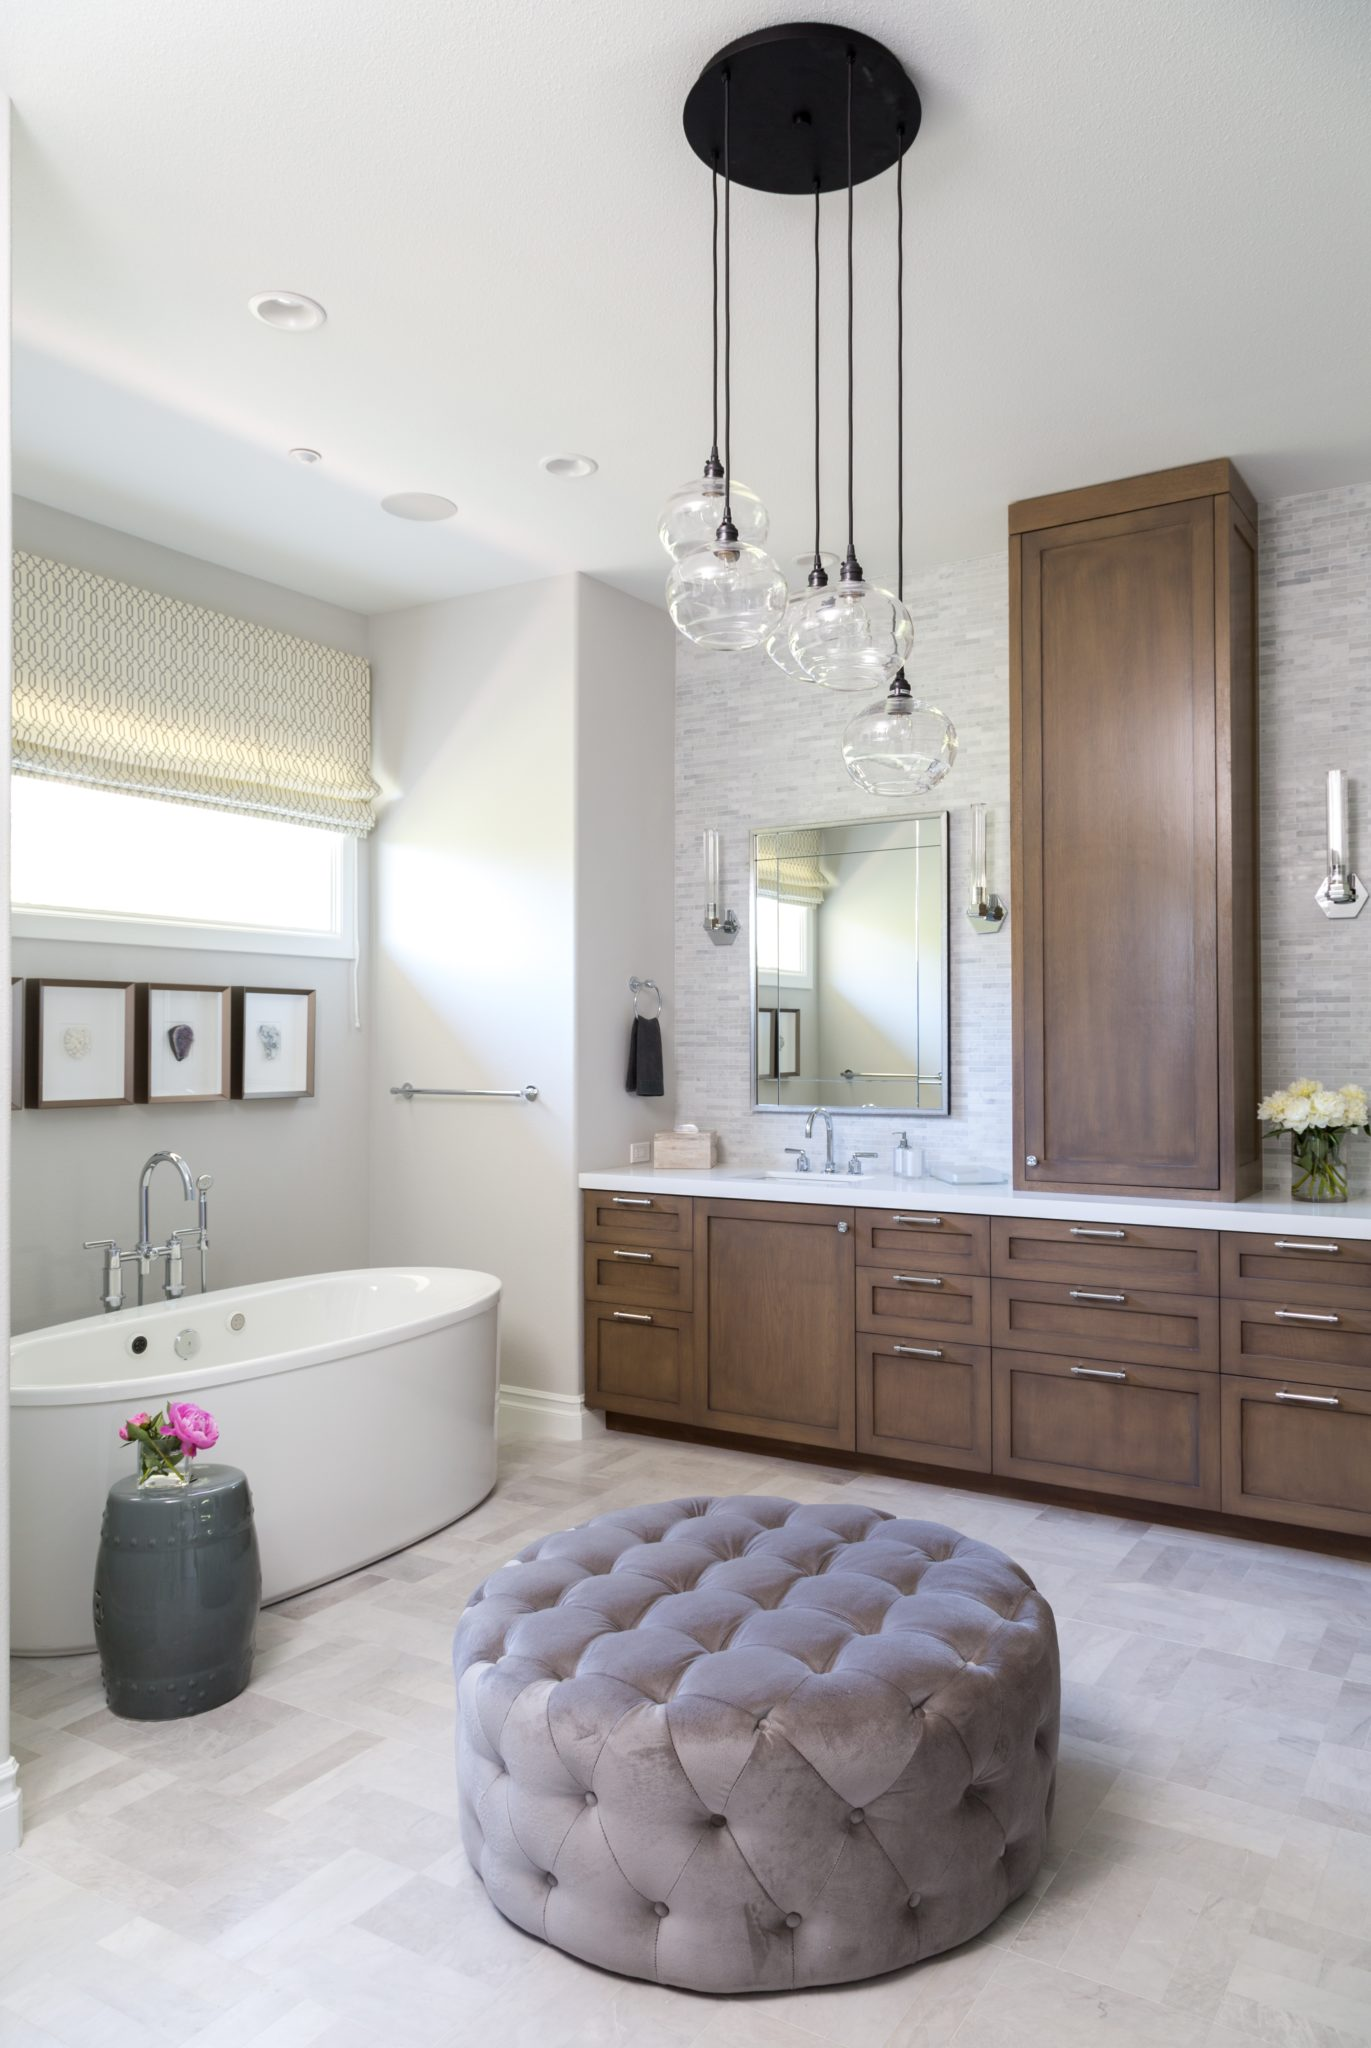 Bathroom featuring custom cabinetry, freestanding tub and chandelier by dmar Interiors